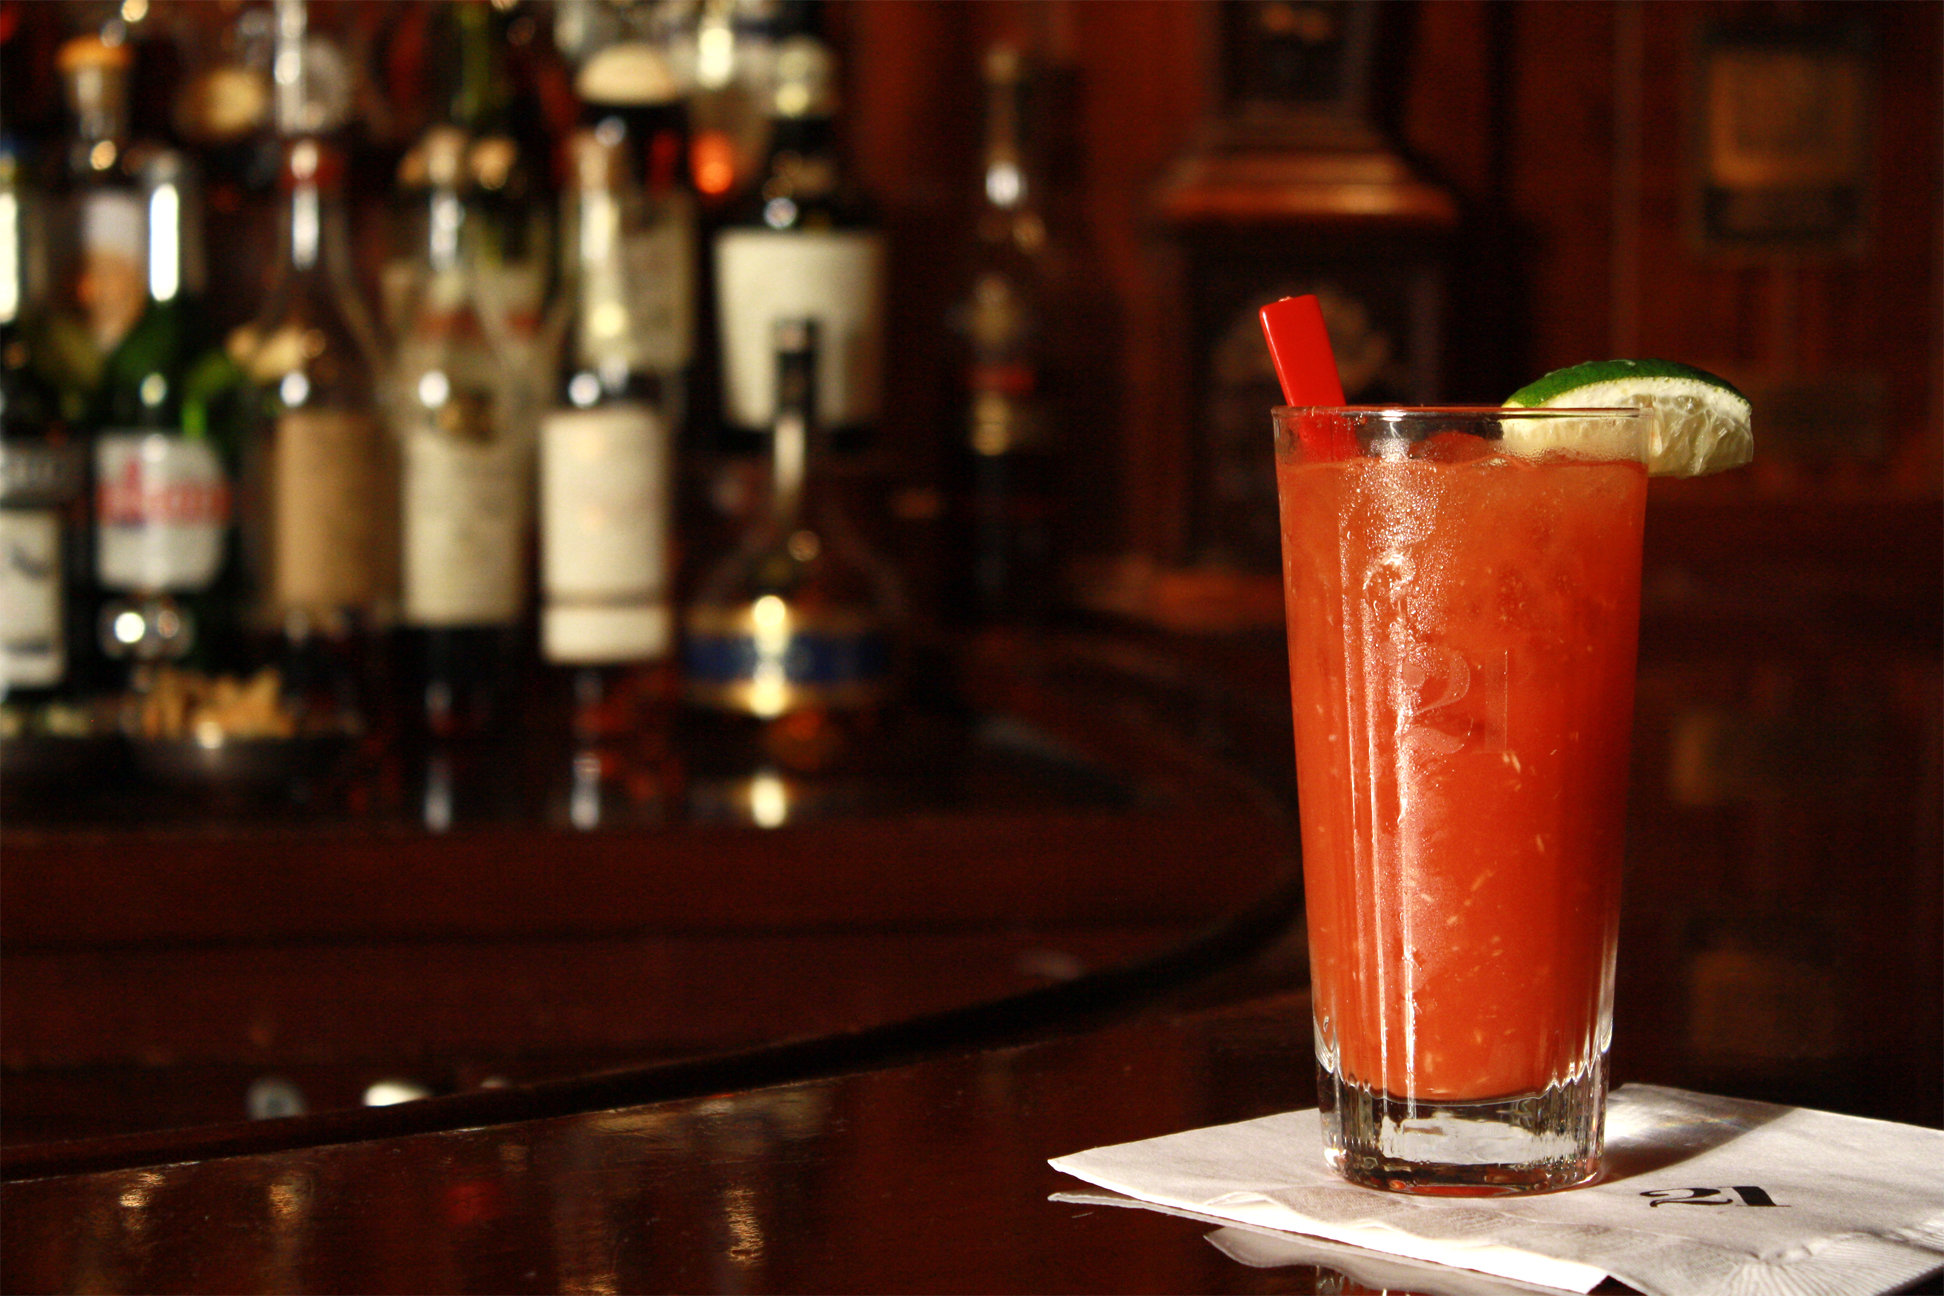 21 Club, bloody mary, the three tomatoes